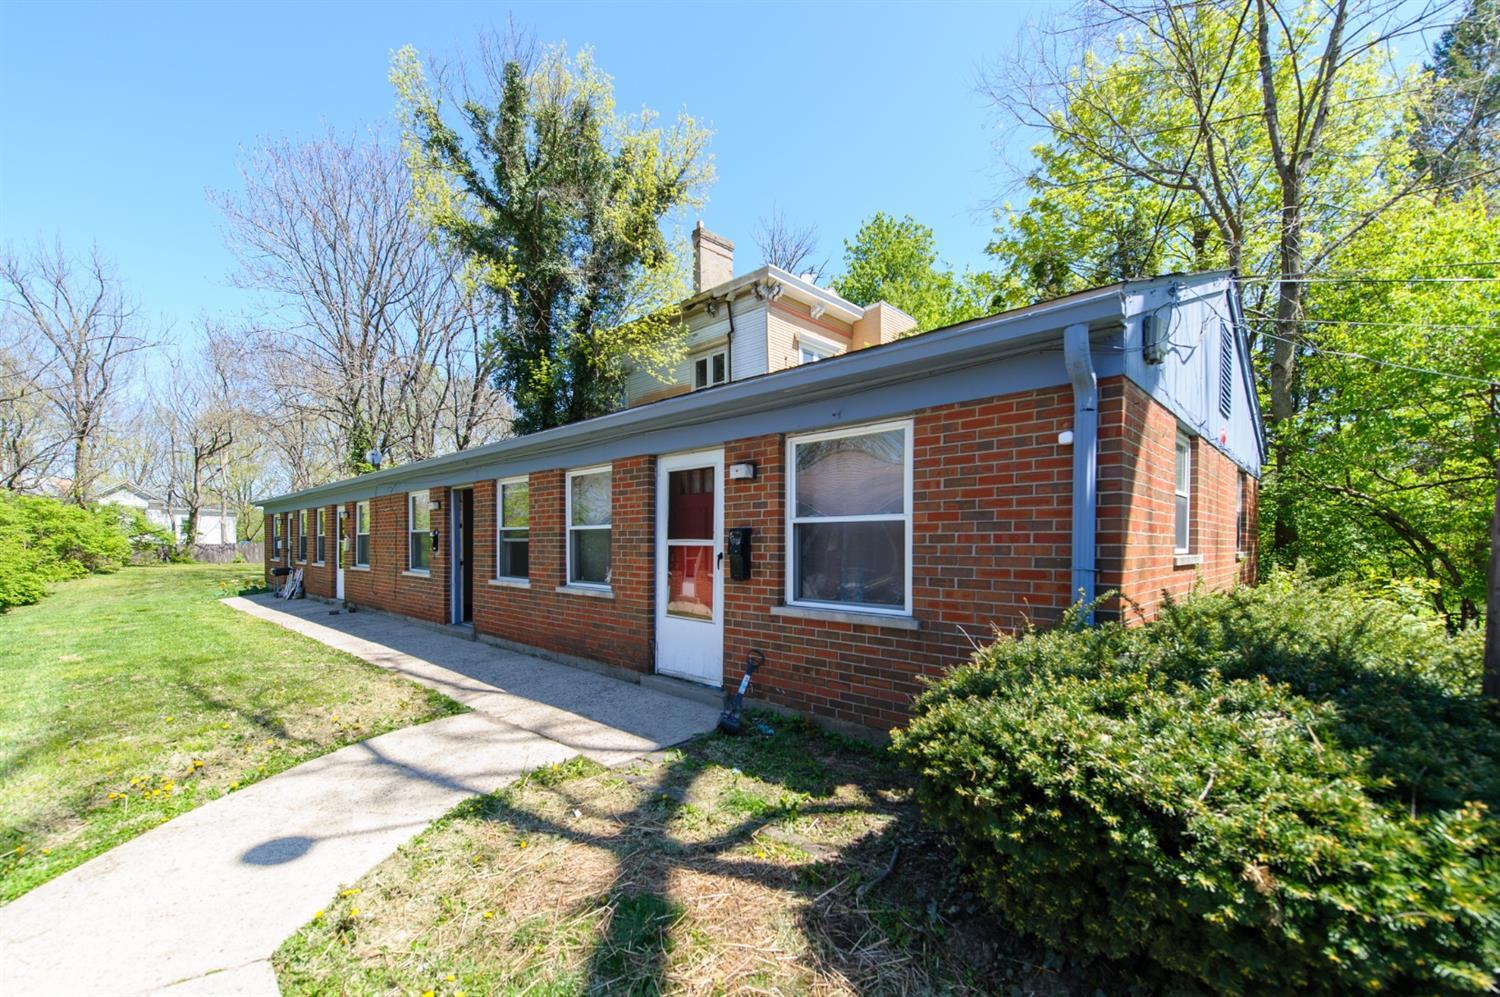 776 784 Hand Ave Spring Grove, OH